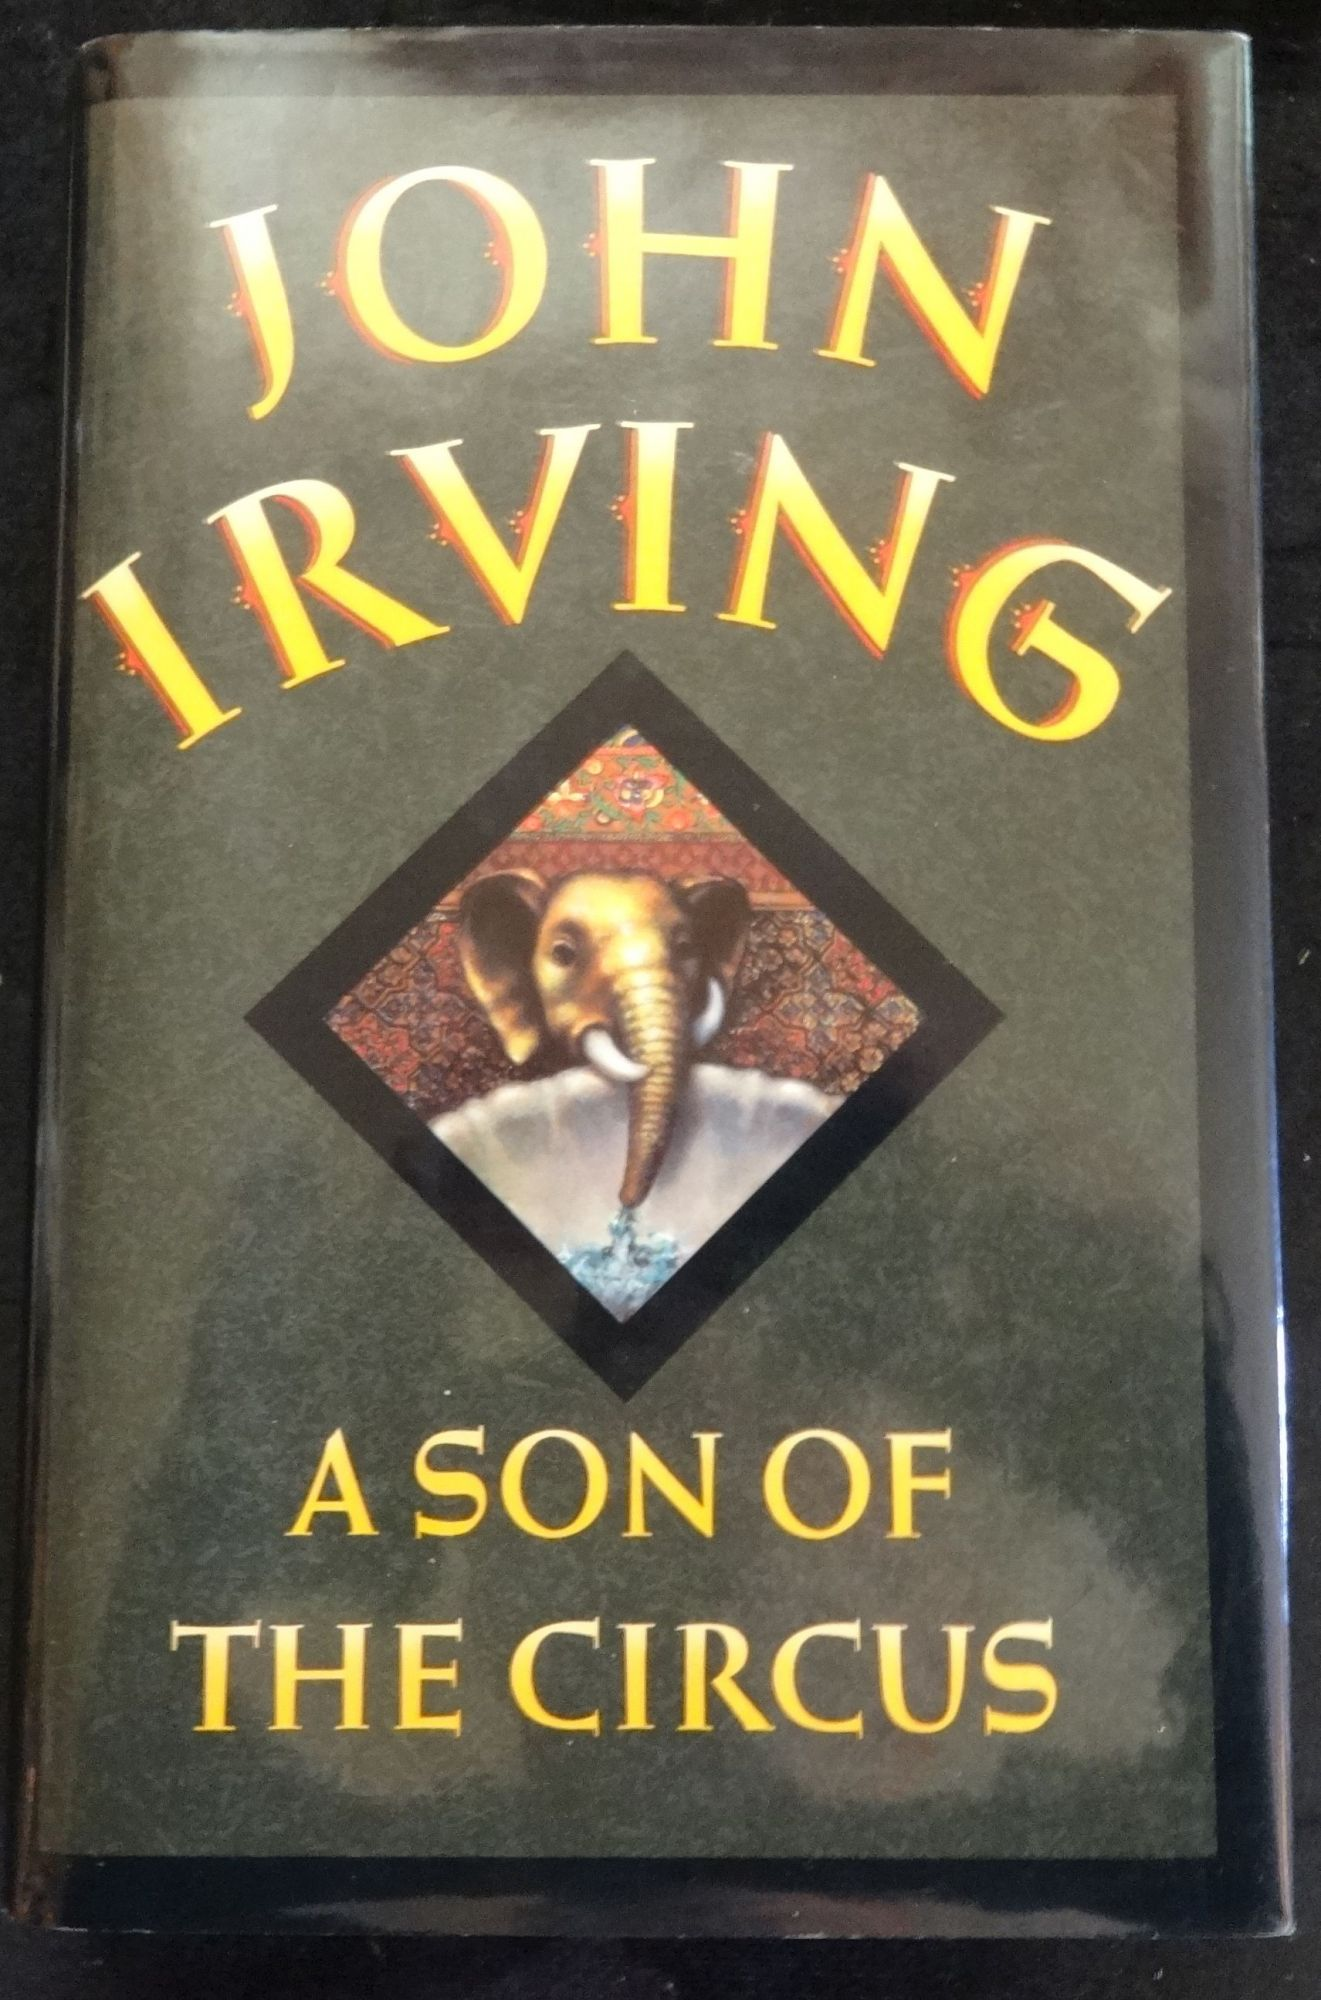 A SON OF THE CIRCUS by John Irving on Bookleggers